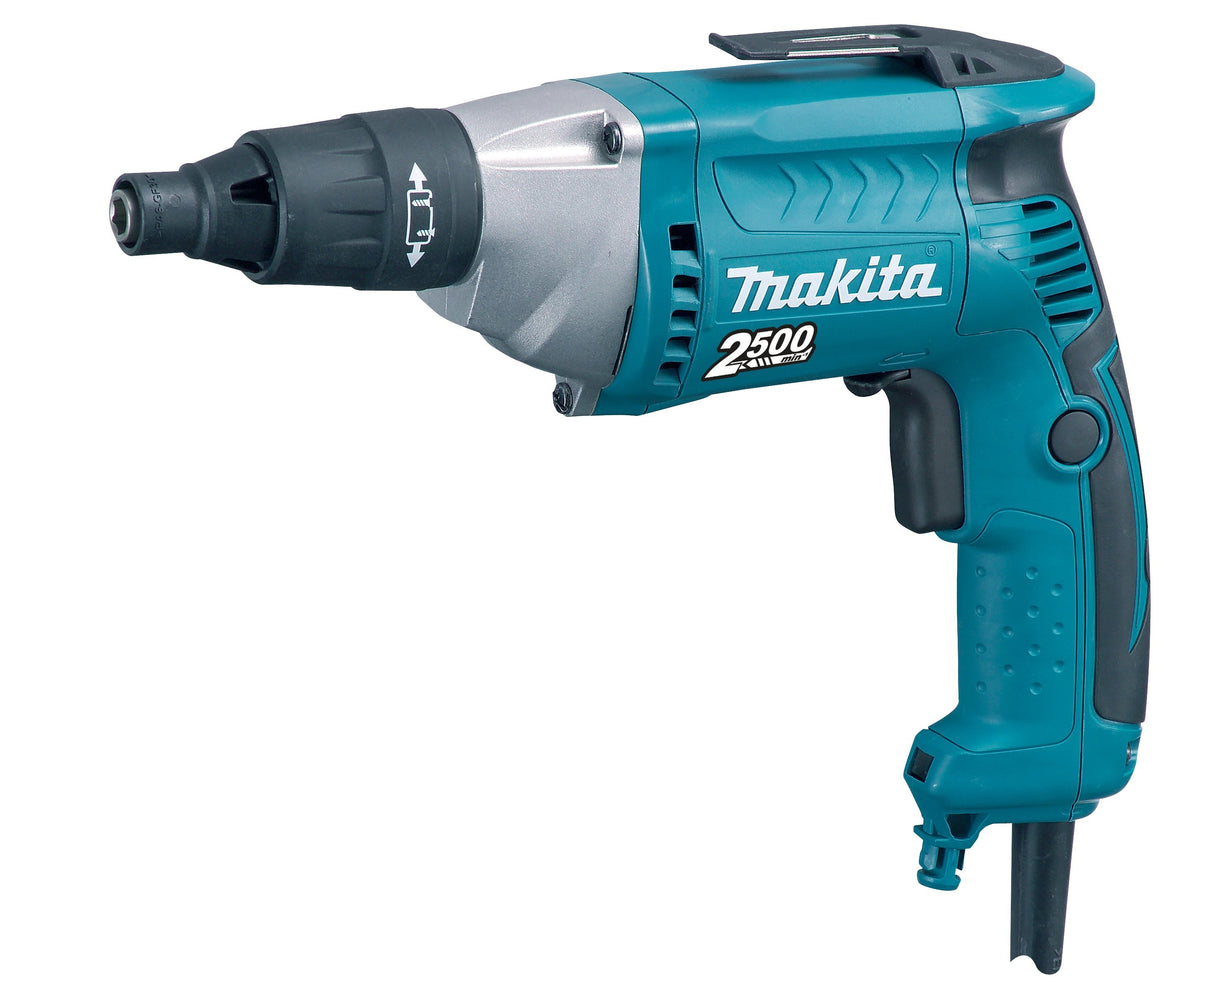 Makita Screwdriver For Teks And Roofing FS2500(570WATT)